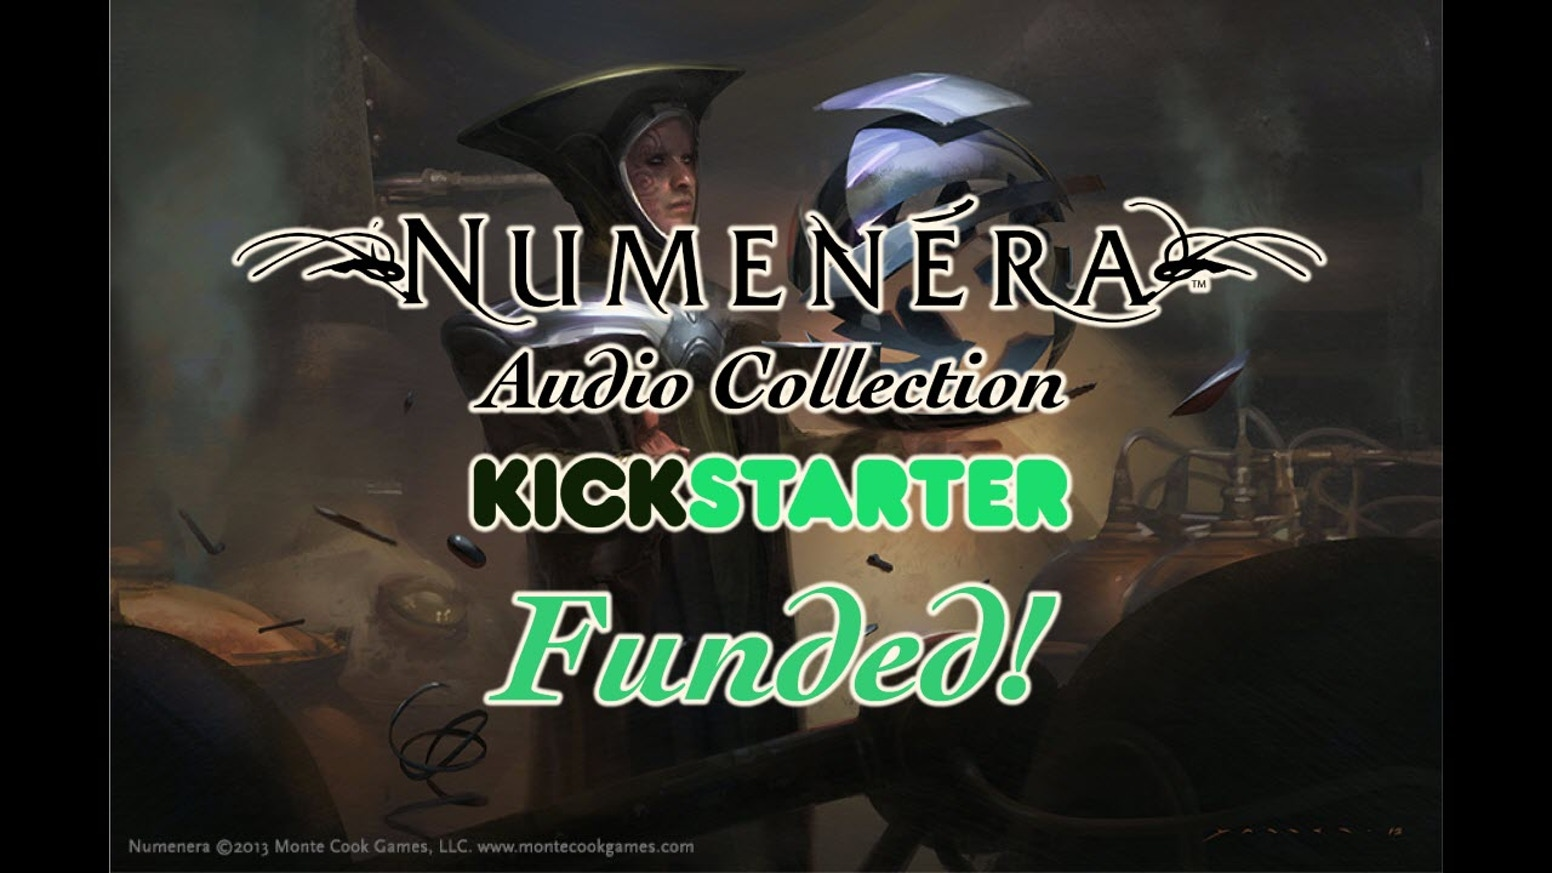 Professionally designed background loops for Monte Cook Games' Numenera setting! 112 tracks unlocked so far!